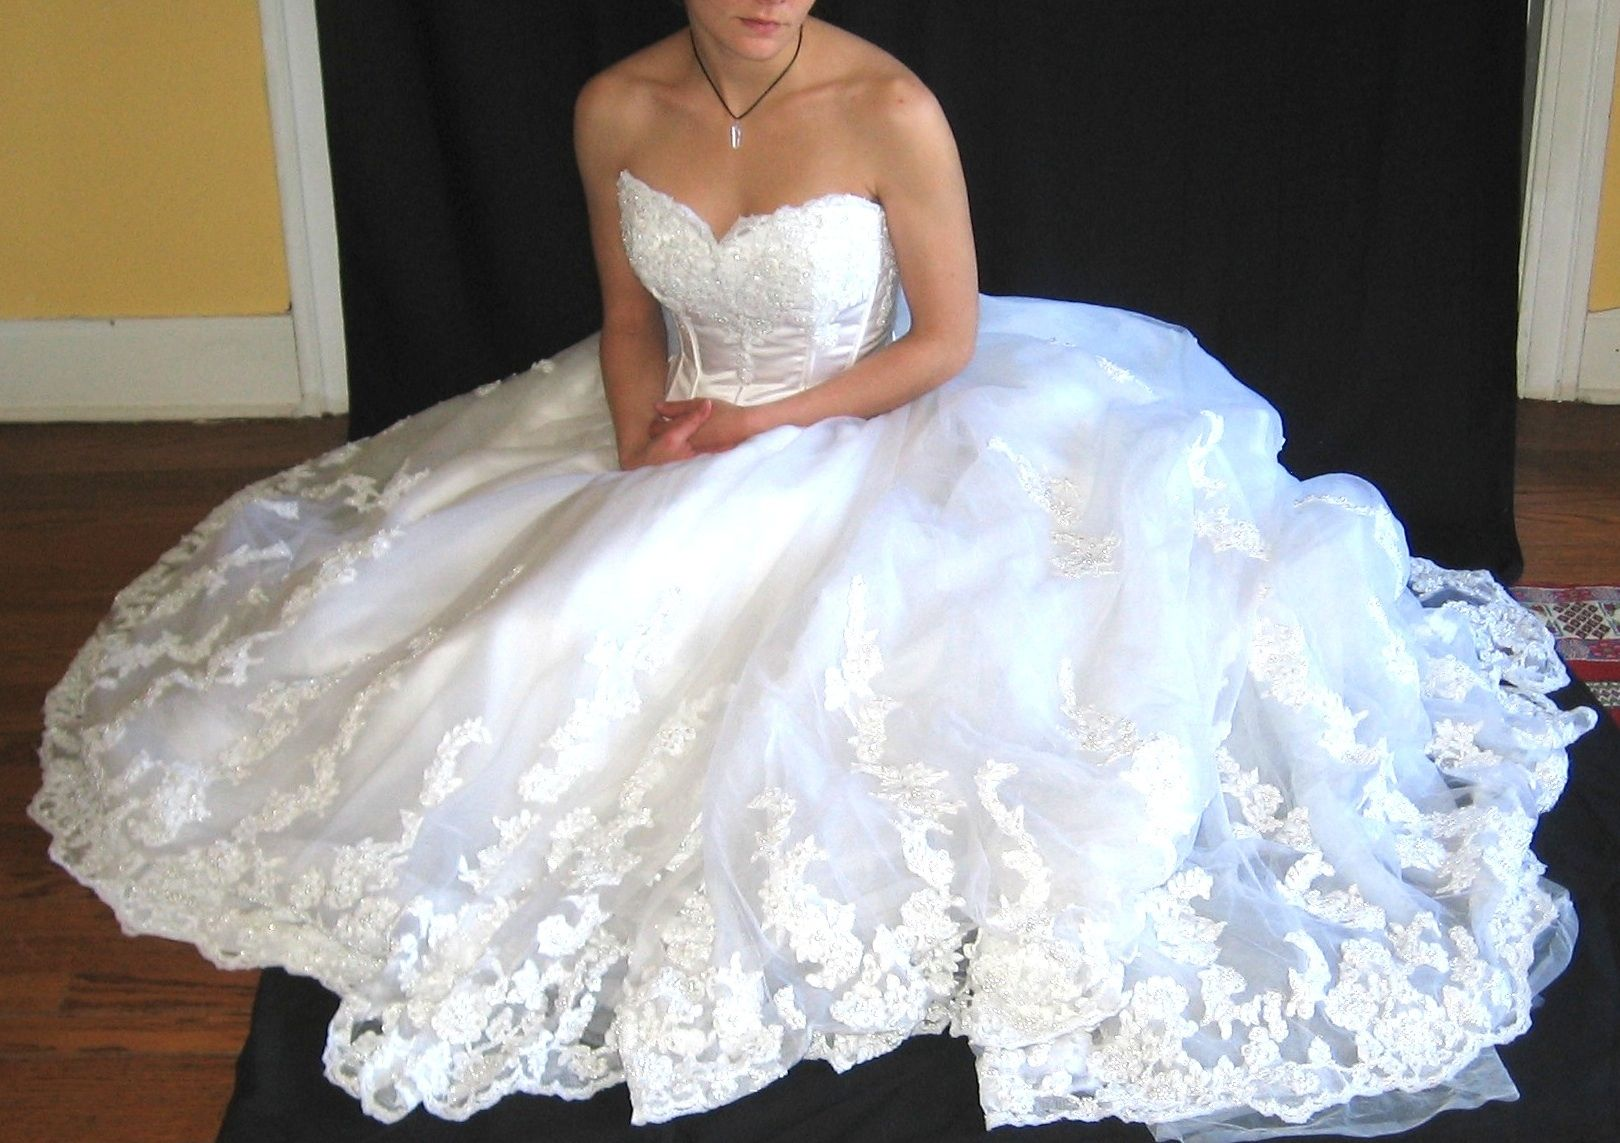 Yes You Can Wash And Dry Your Wedding Dress At Home Clean Wedding Dress Diy Wedding Dress Wedding Dresses